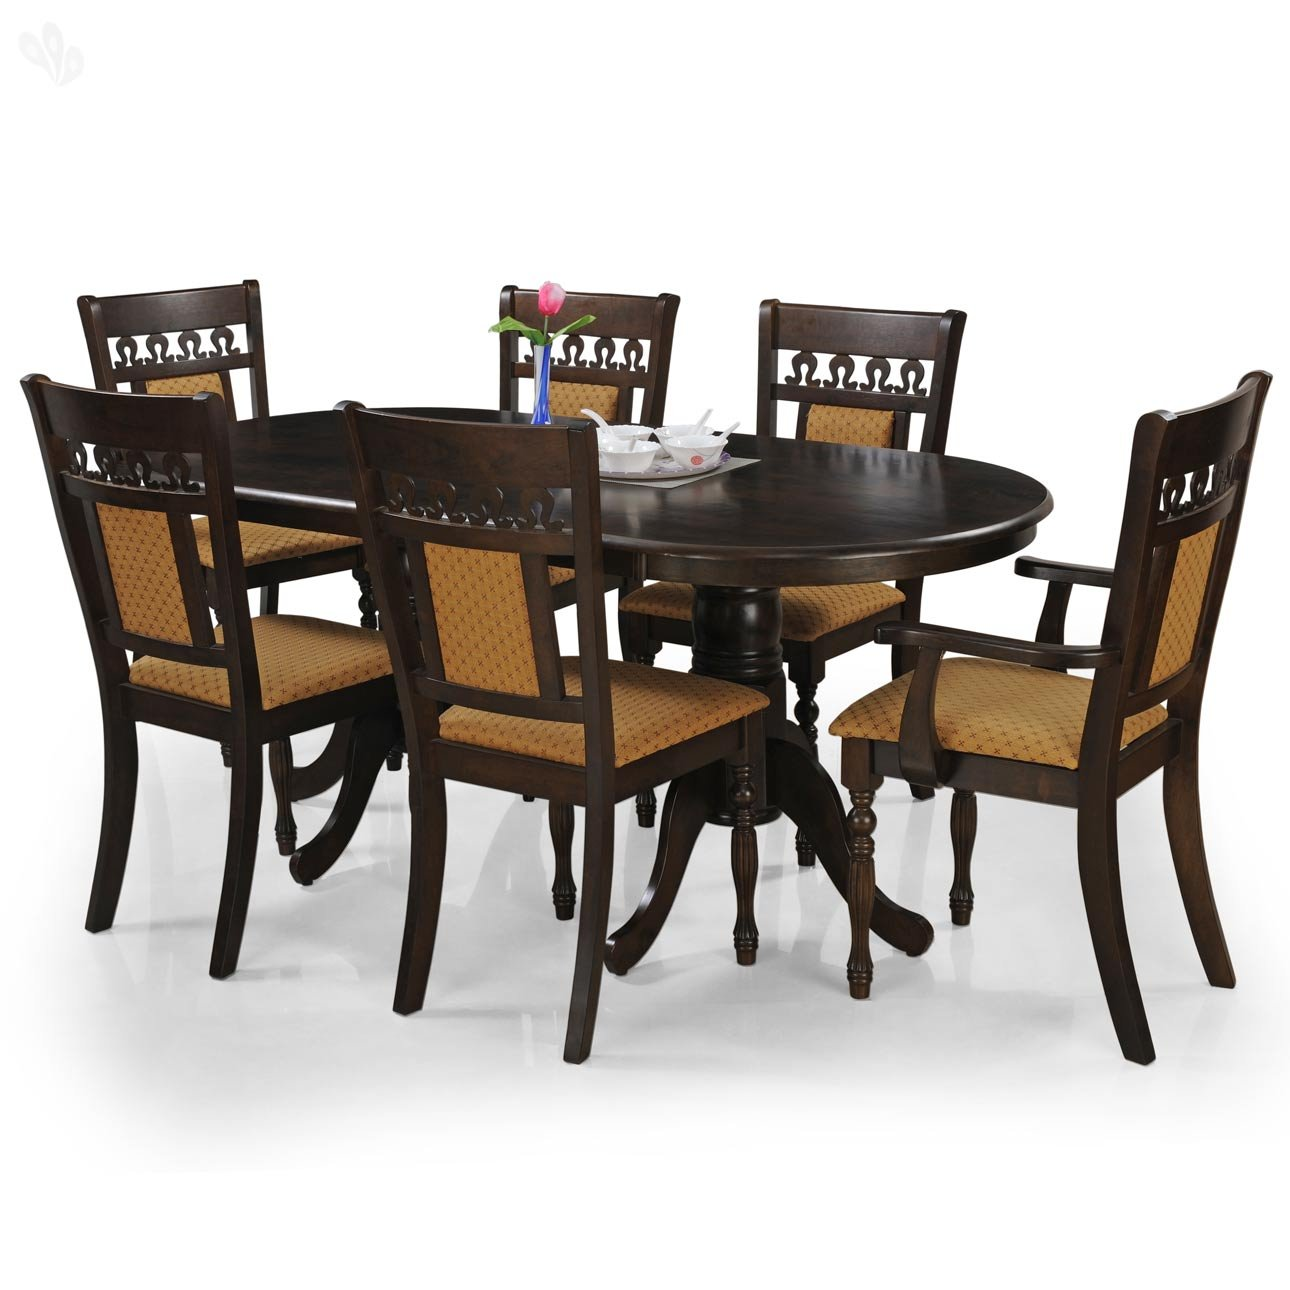 Royal oak angel six seater dining table set brown best for Kitchen set royal surabaya